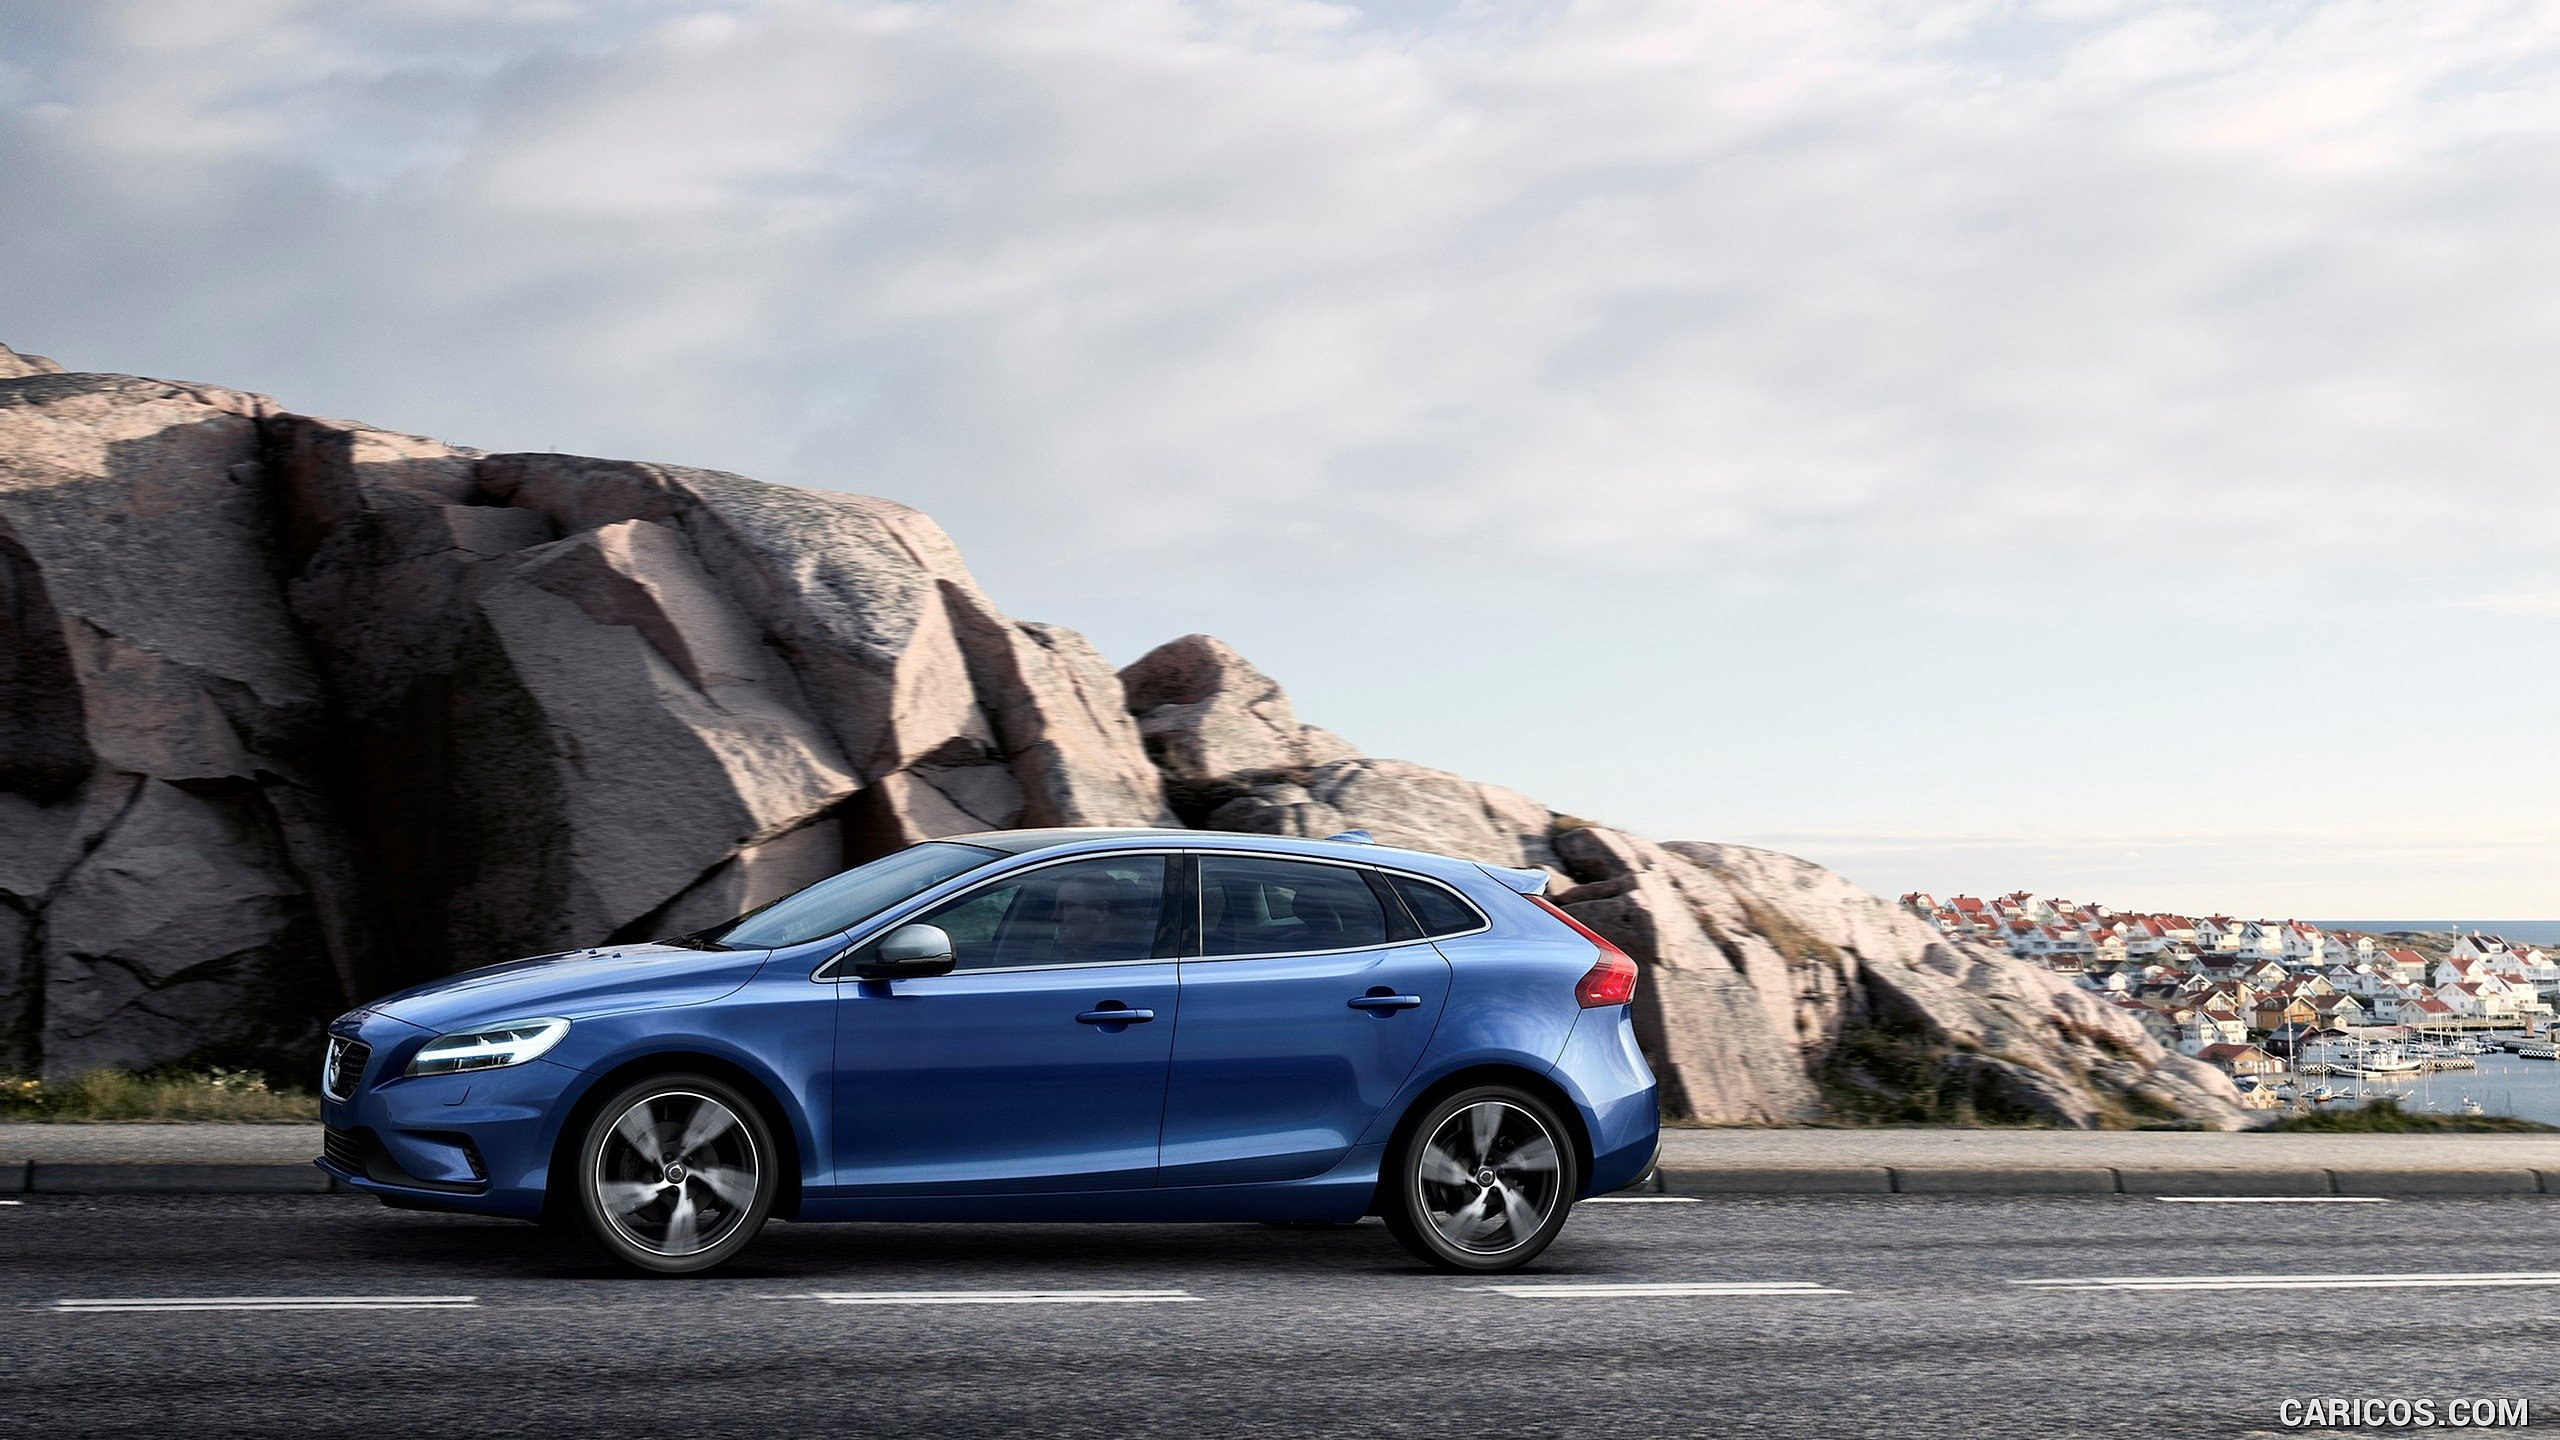 2017 Volvo V40 T5 R design   Side HD Wallpaper 12 2560x1440